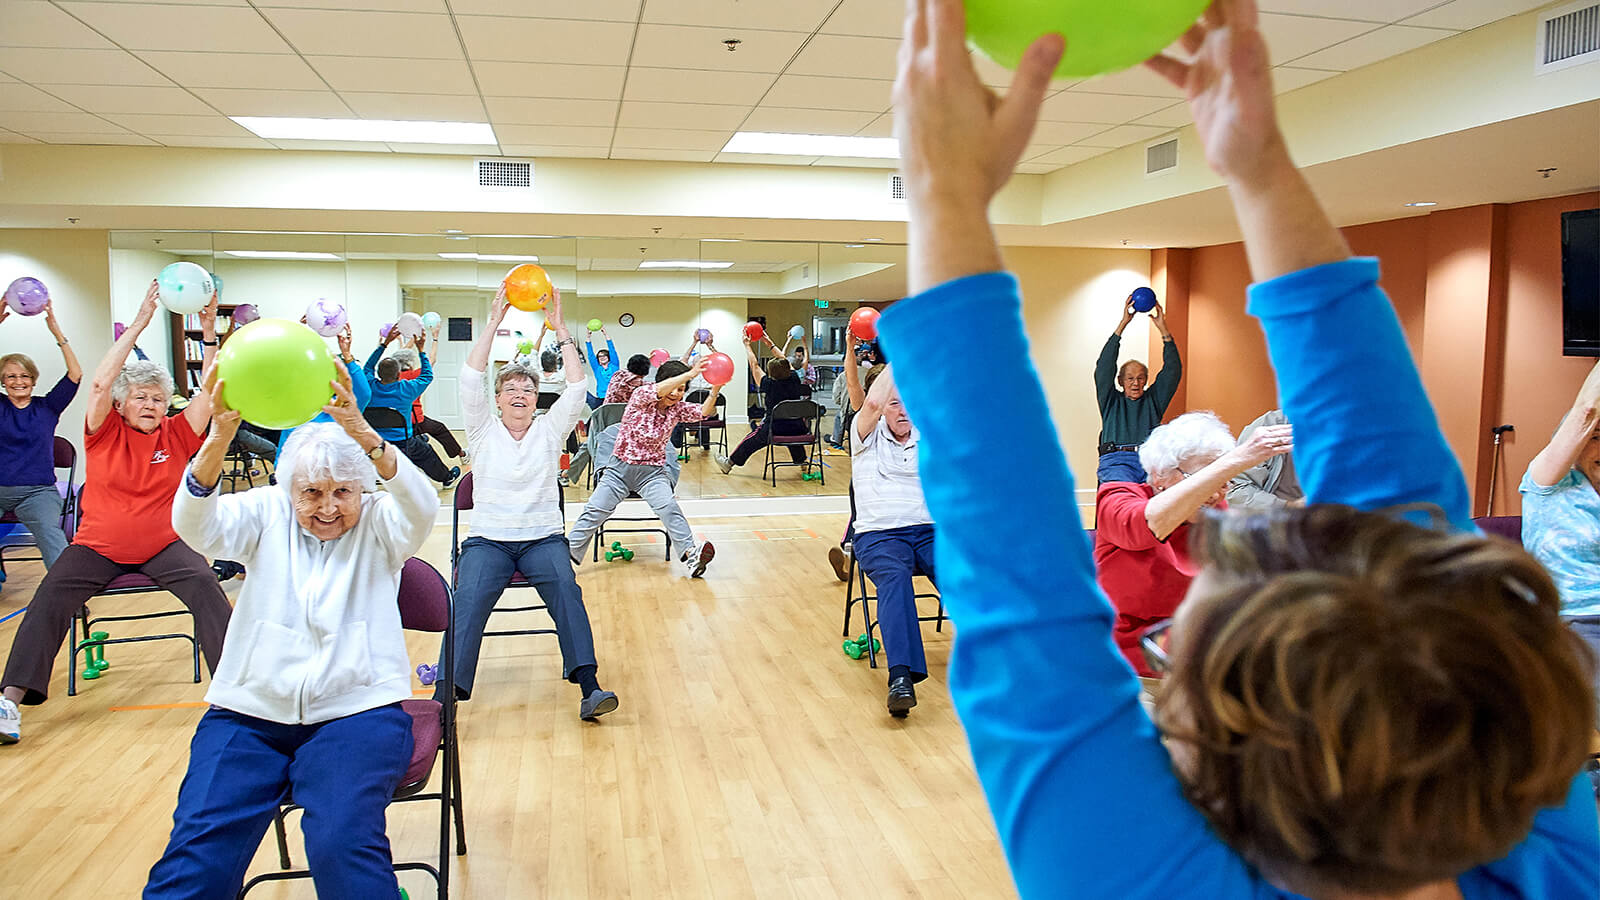 Residents participating in a fitness class